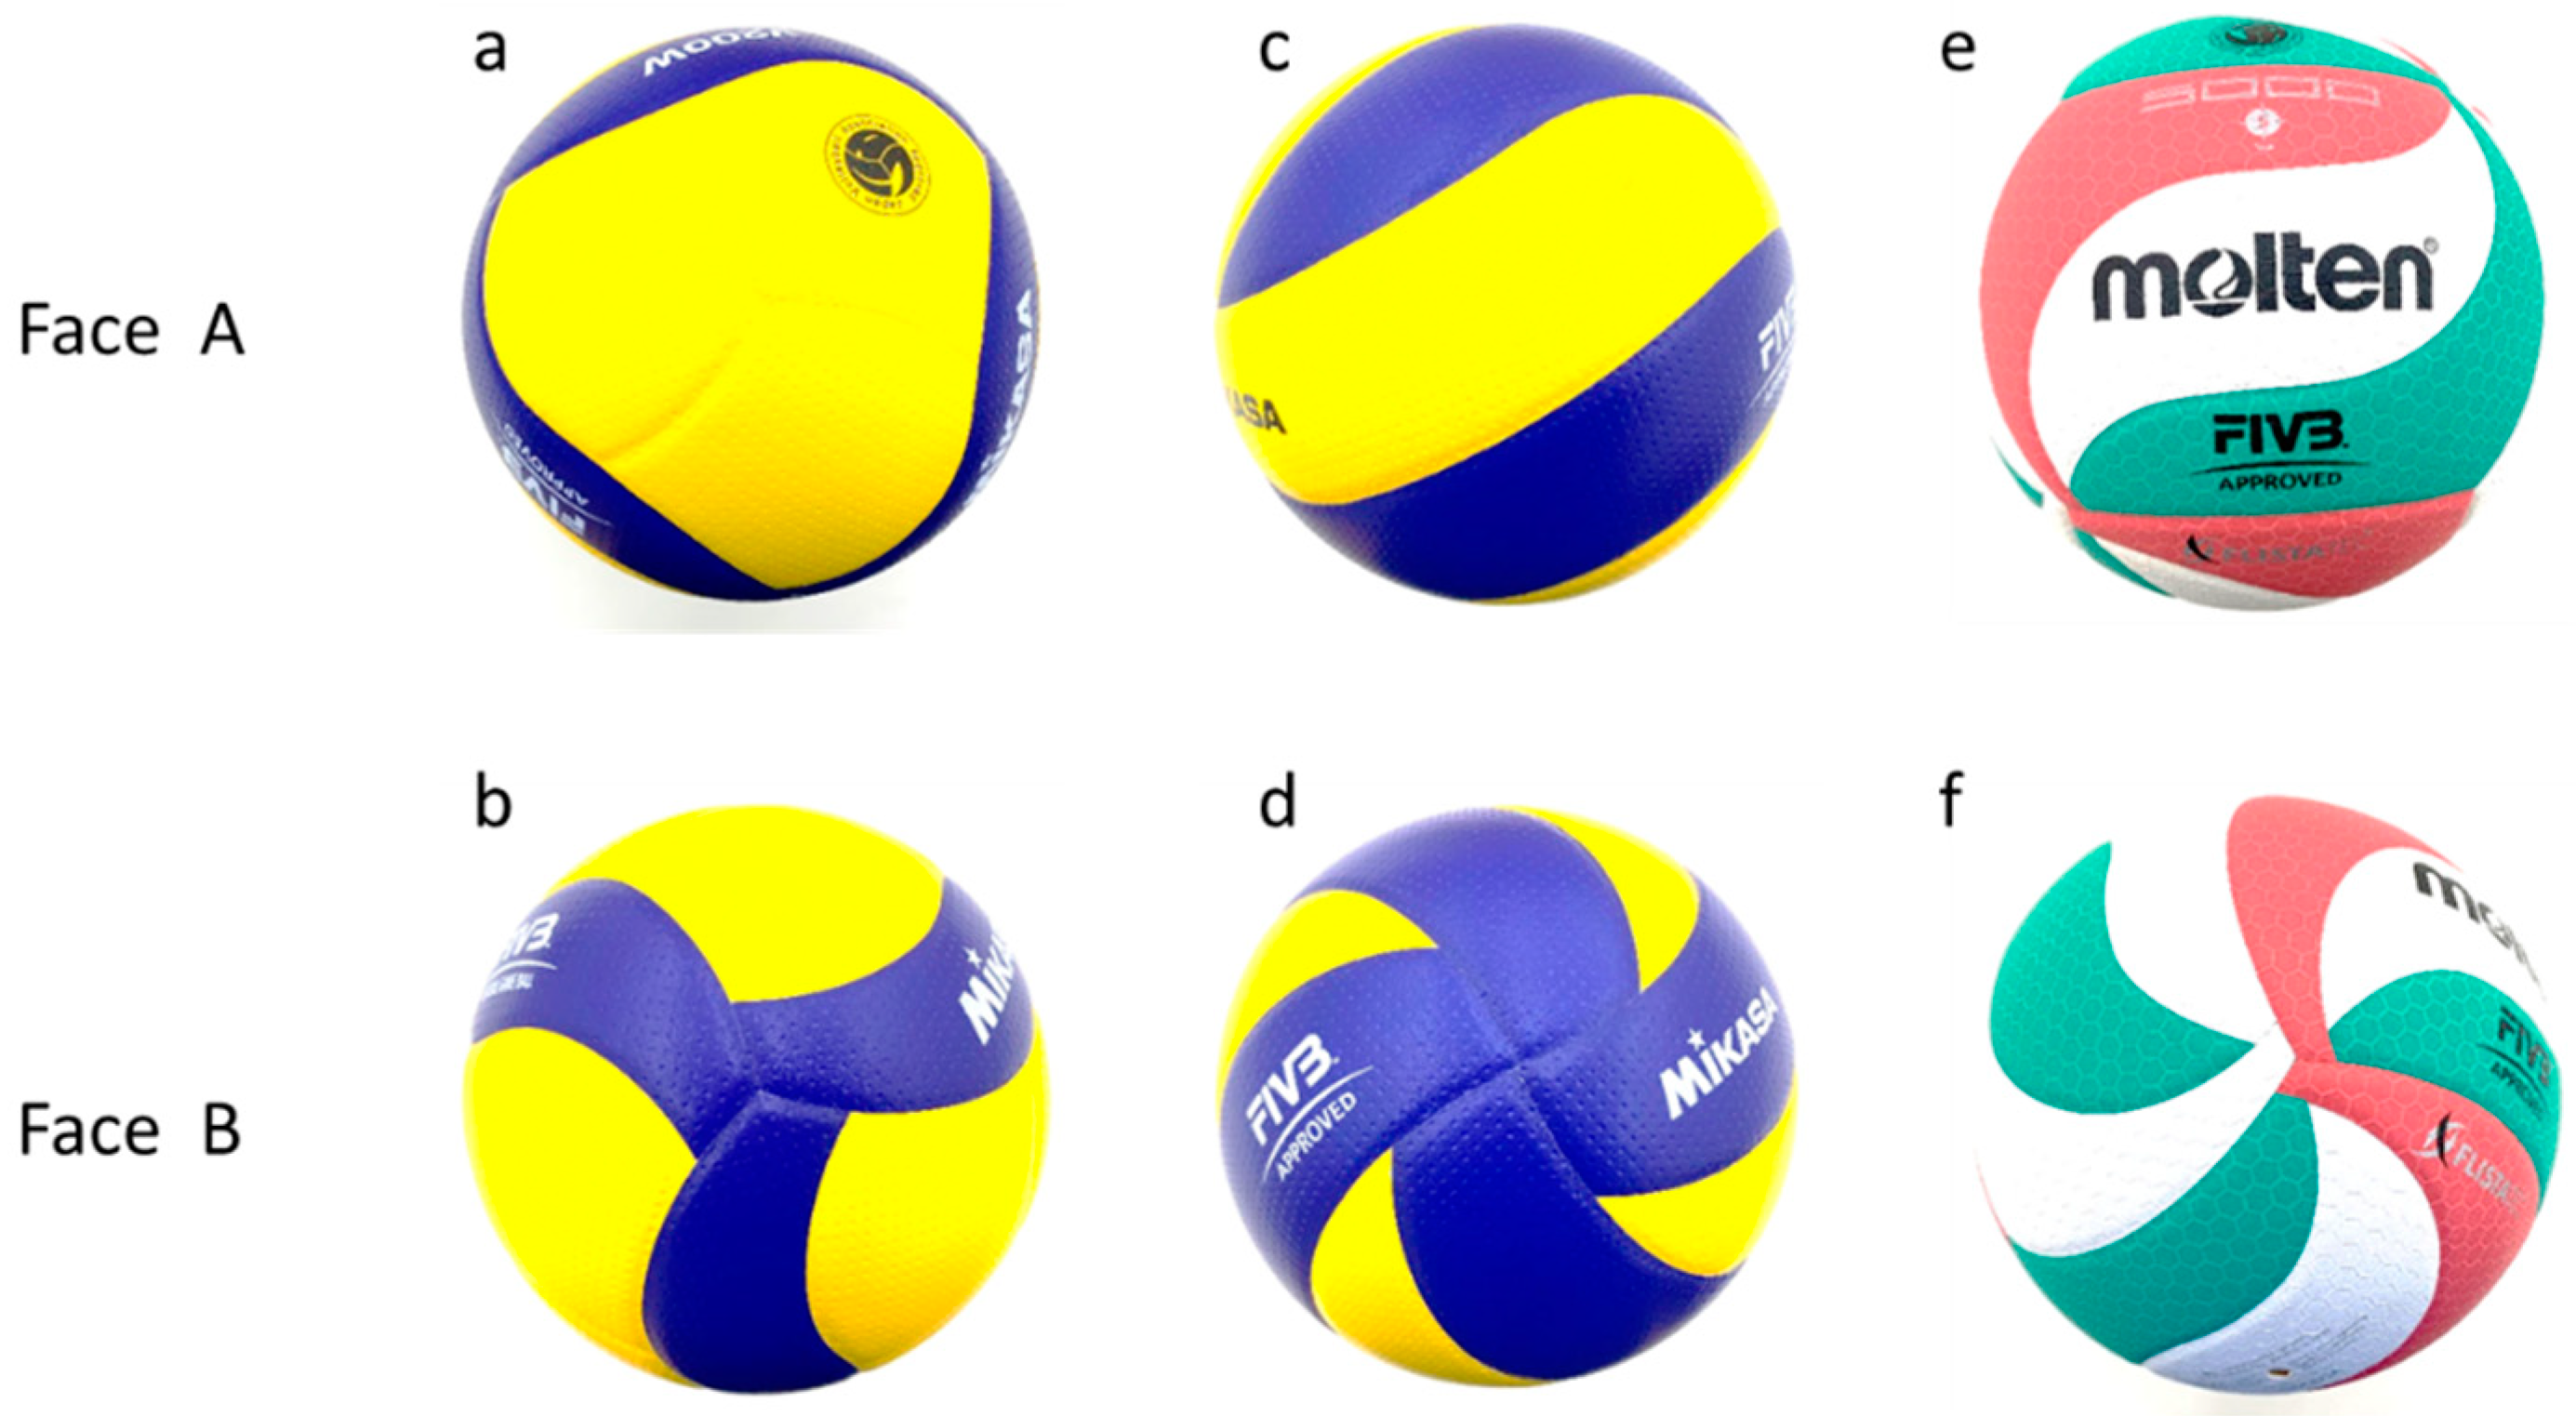 Applied Sciences Free Full Text Aerodynamic Characteristics Of New Volleyball For The 2020 Tokyo Olympics Html